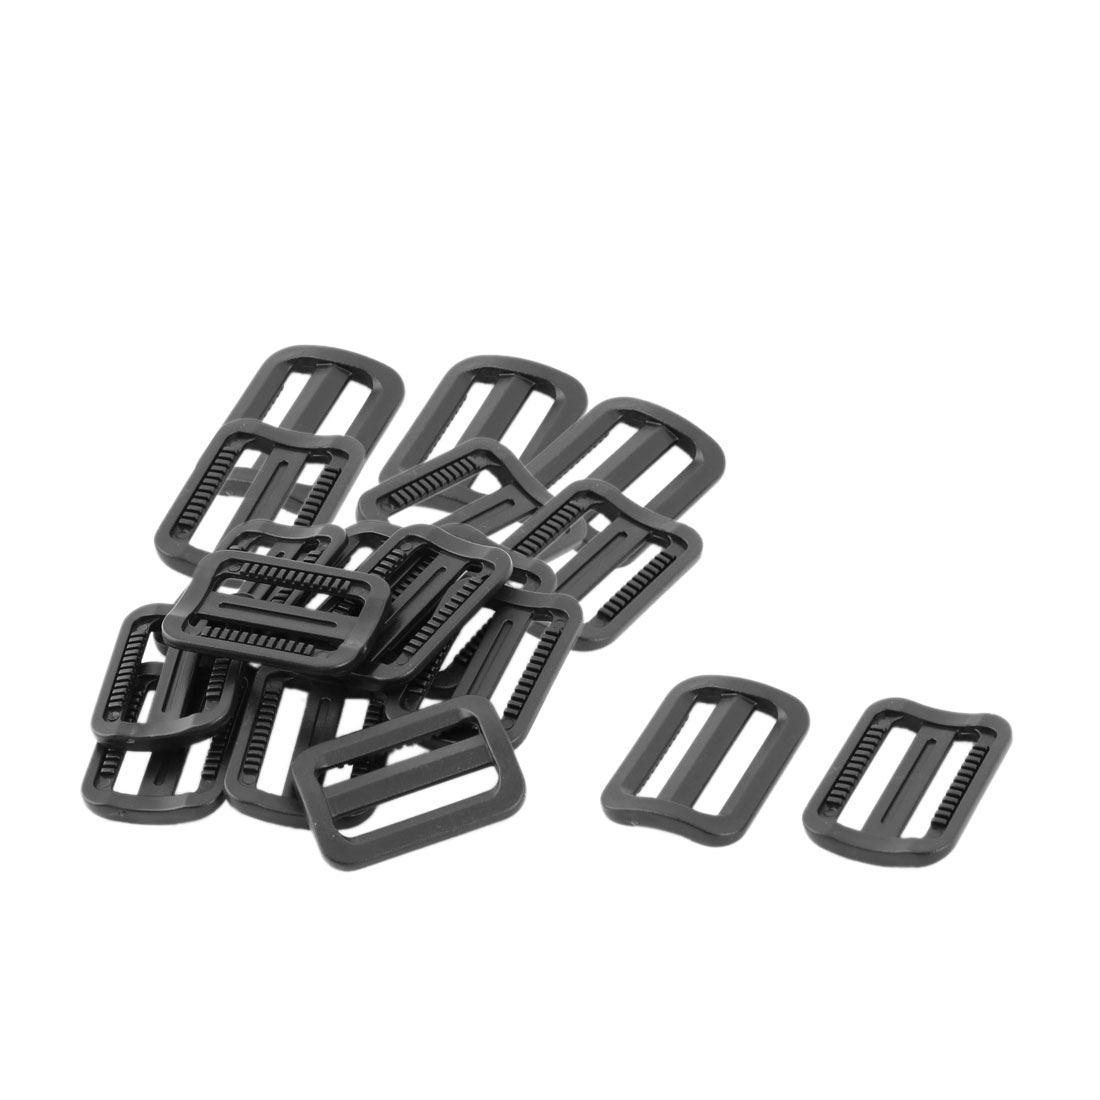 Travel Plastic Adjustable Backpack Tri Glide Buckle Black 25mm Strap Width 18pcs